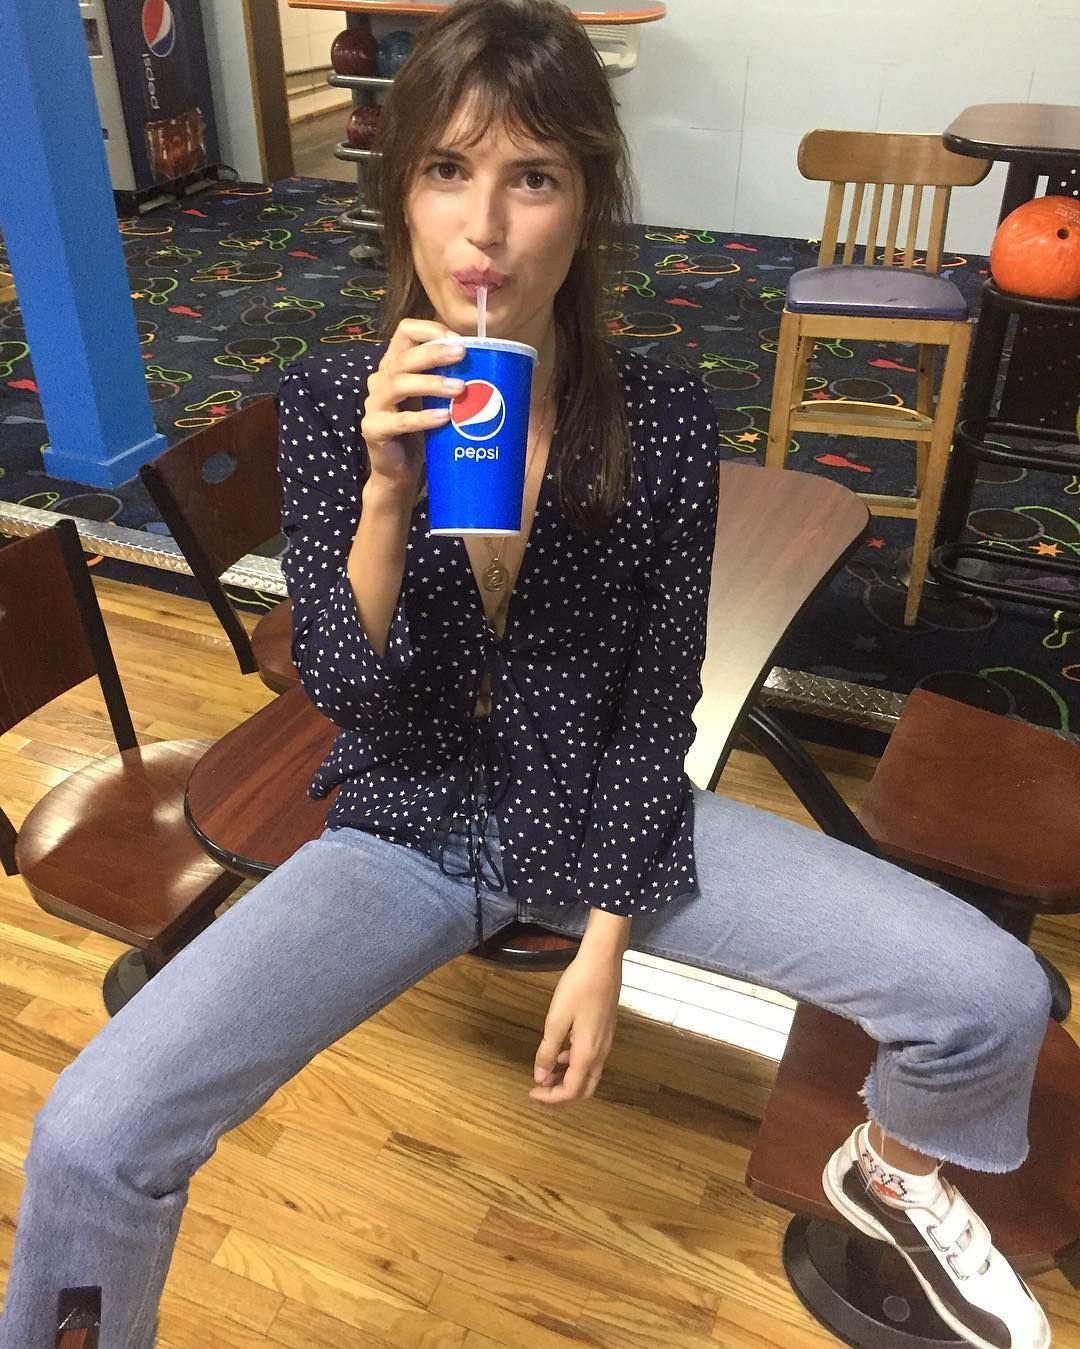 Fappening Selfie Jeanne Damas naked photo 2017